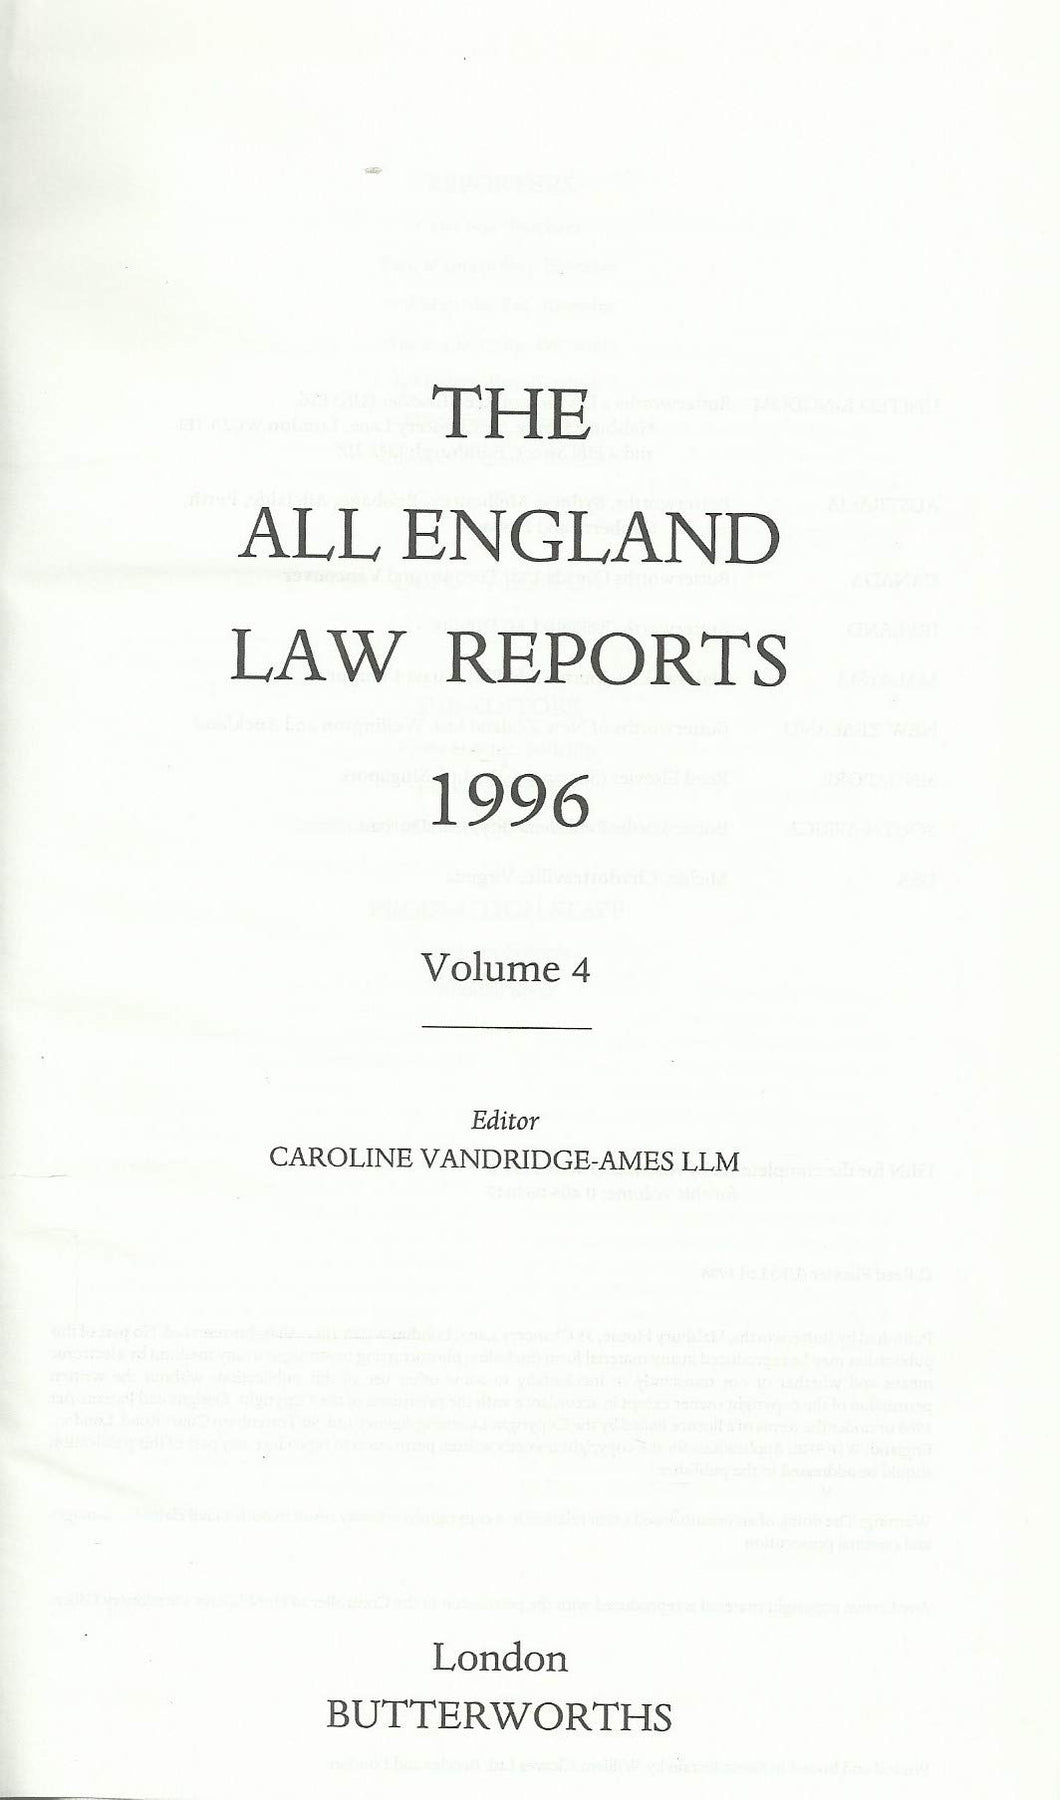 All England Law Reports 1996: Vol 4